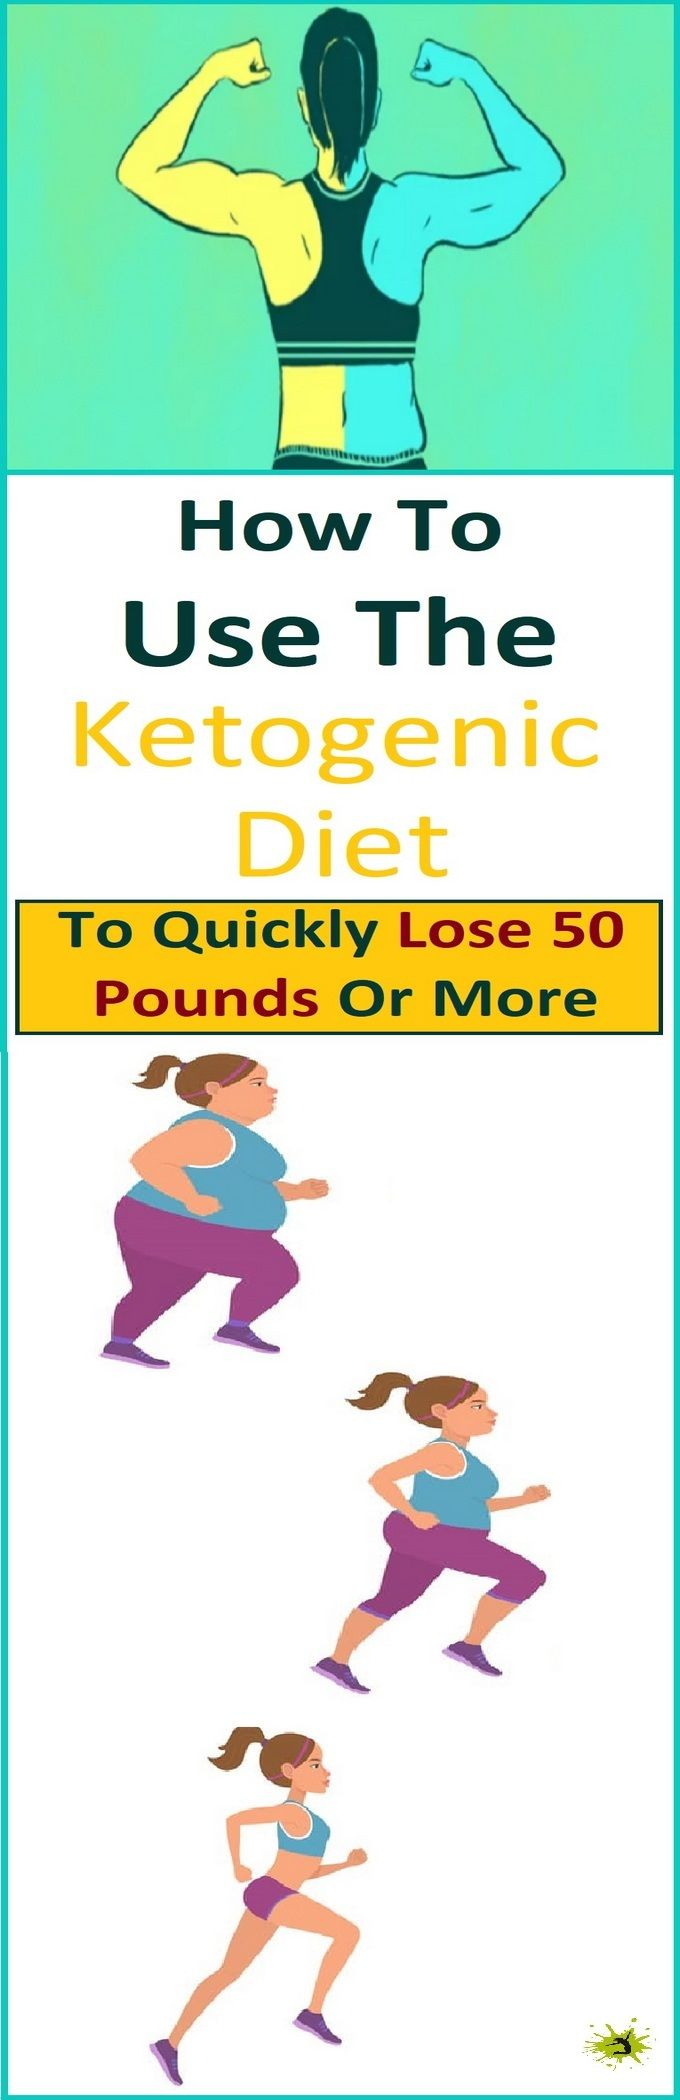 Many people try to lose weight nowadays. Some will be lucky enough to do it, but some won't, so they will eventually quit. In this article, we're going to show you how to lose weight #keto #ketodiet #ketogenic #ketogenicdiet #ketorecipes #recipe #weightlossrecipes #diet #healthy